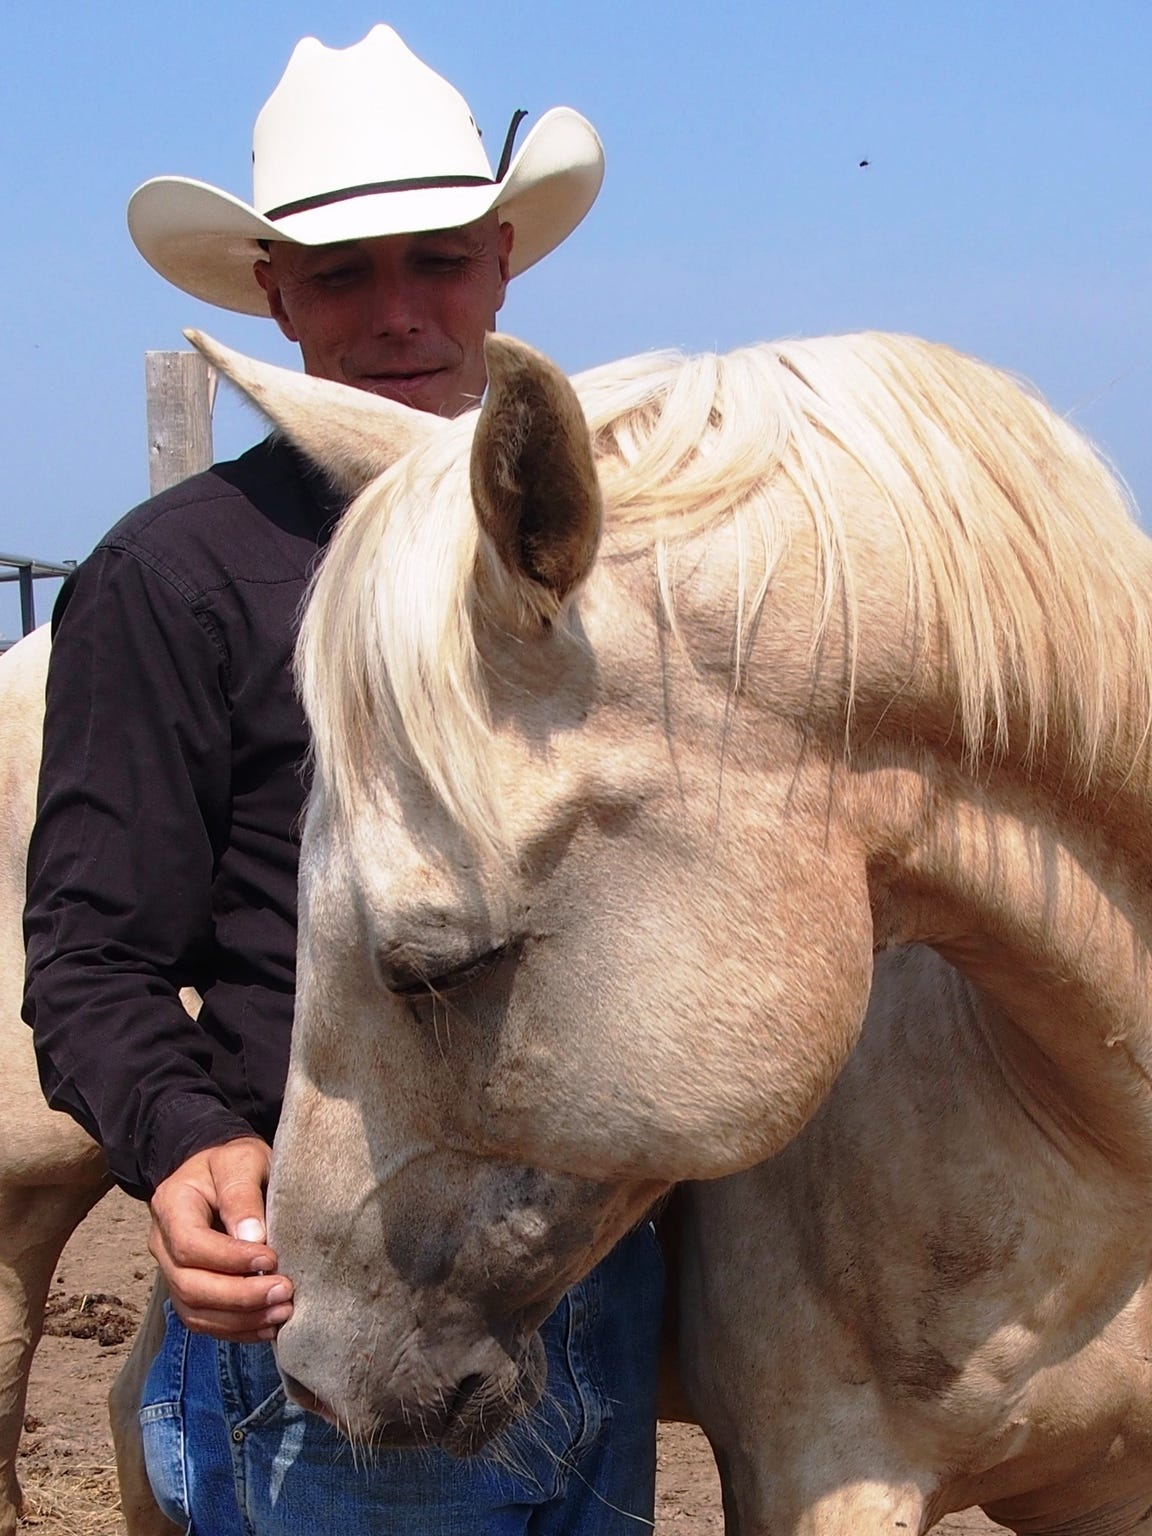 Pastor Dave Ward poses with Leo, a 24-year-old palomino horse, one of several hard-luck cases that he has trained and tamed on Sweet Haven Ranch in Chilton.